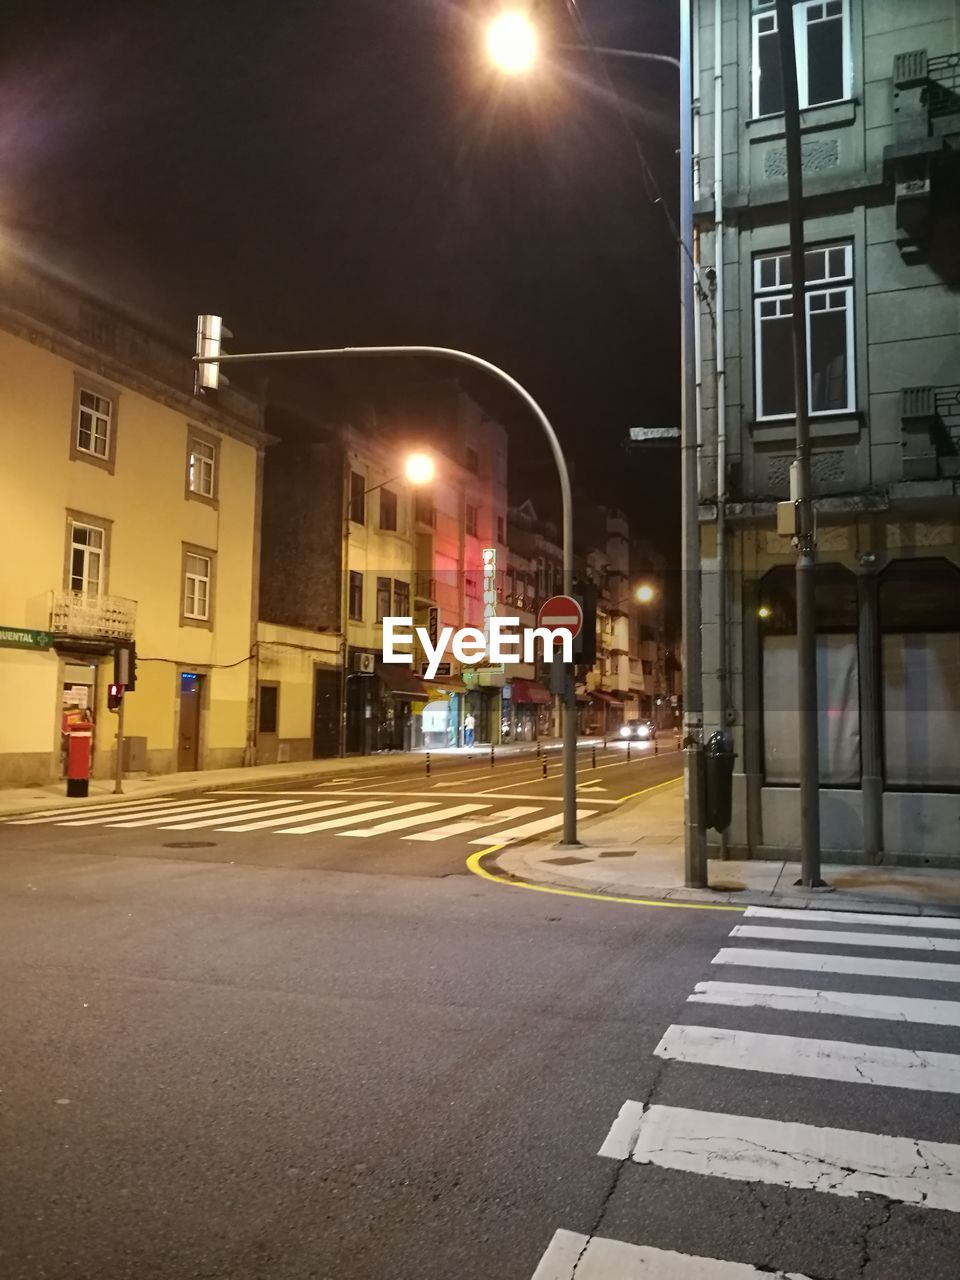 illuminated, night, building exterior, street, architecture, street light, built structure, transportation, outdoors, road, city, no people, sky